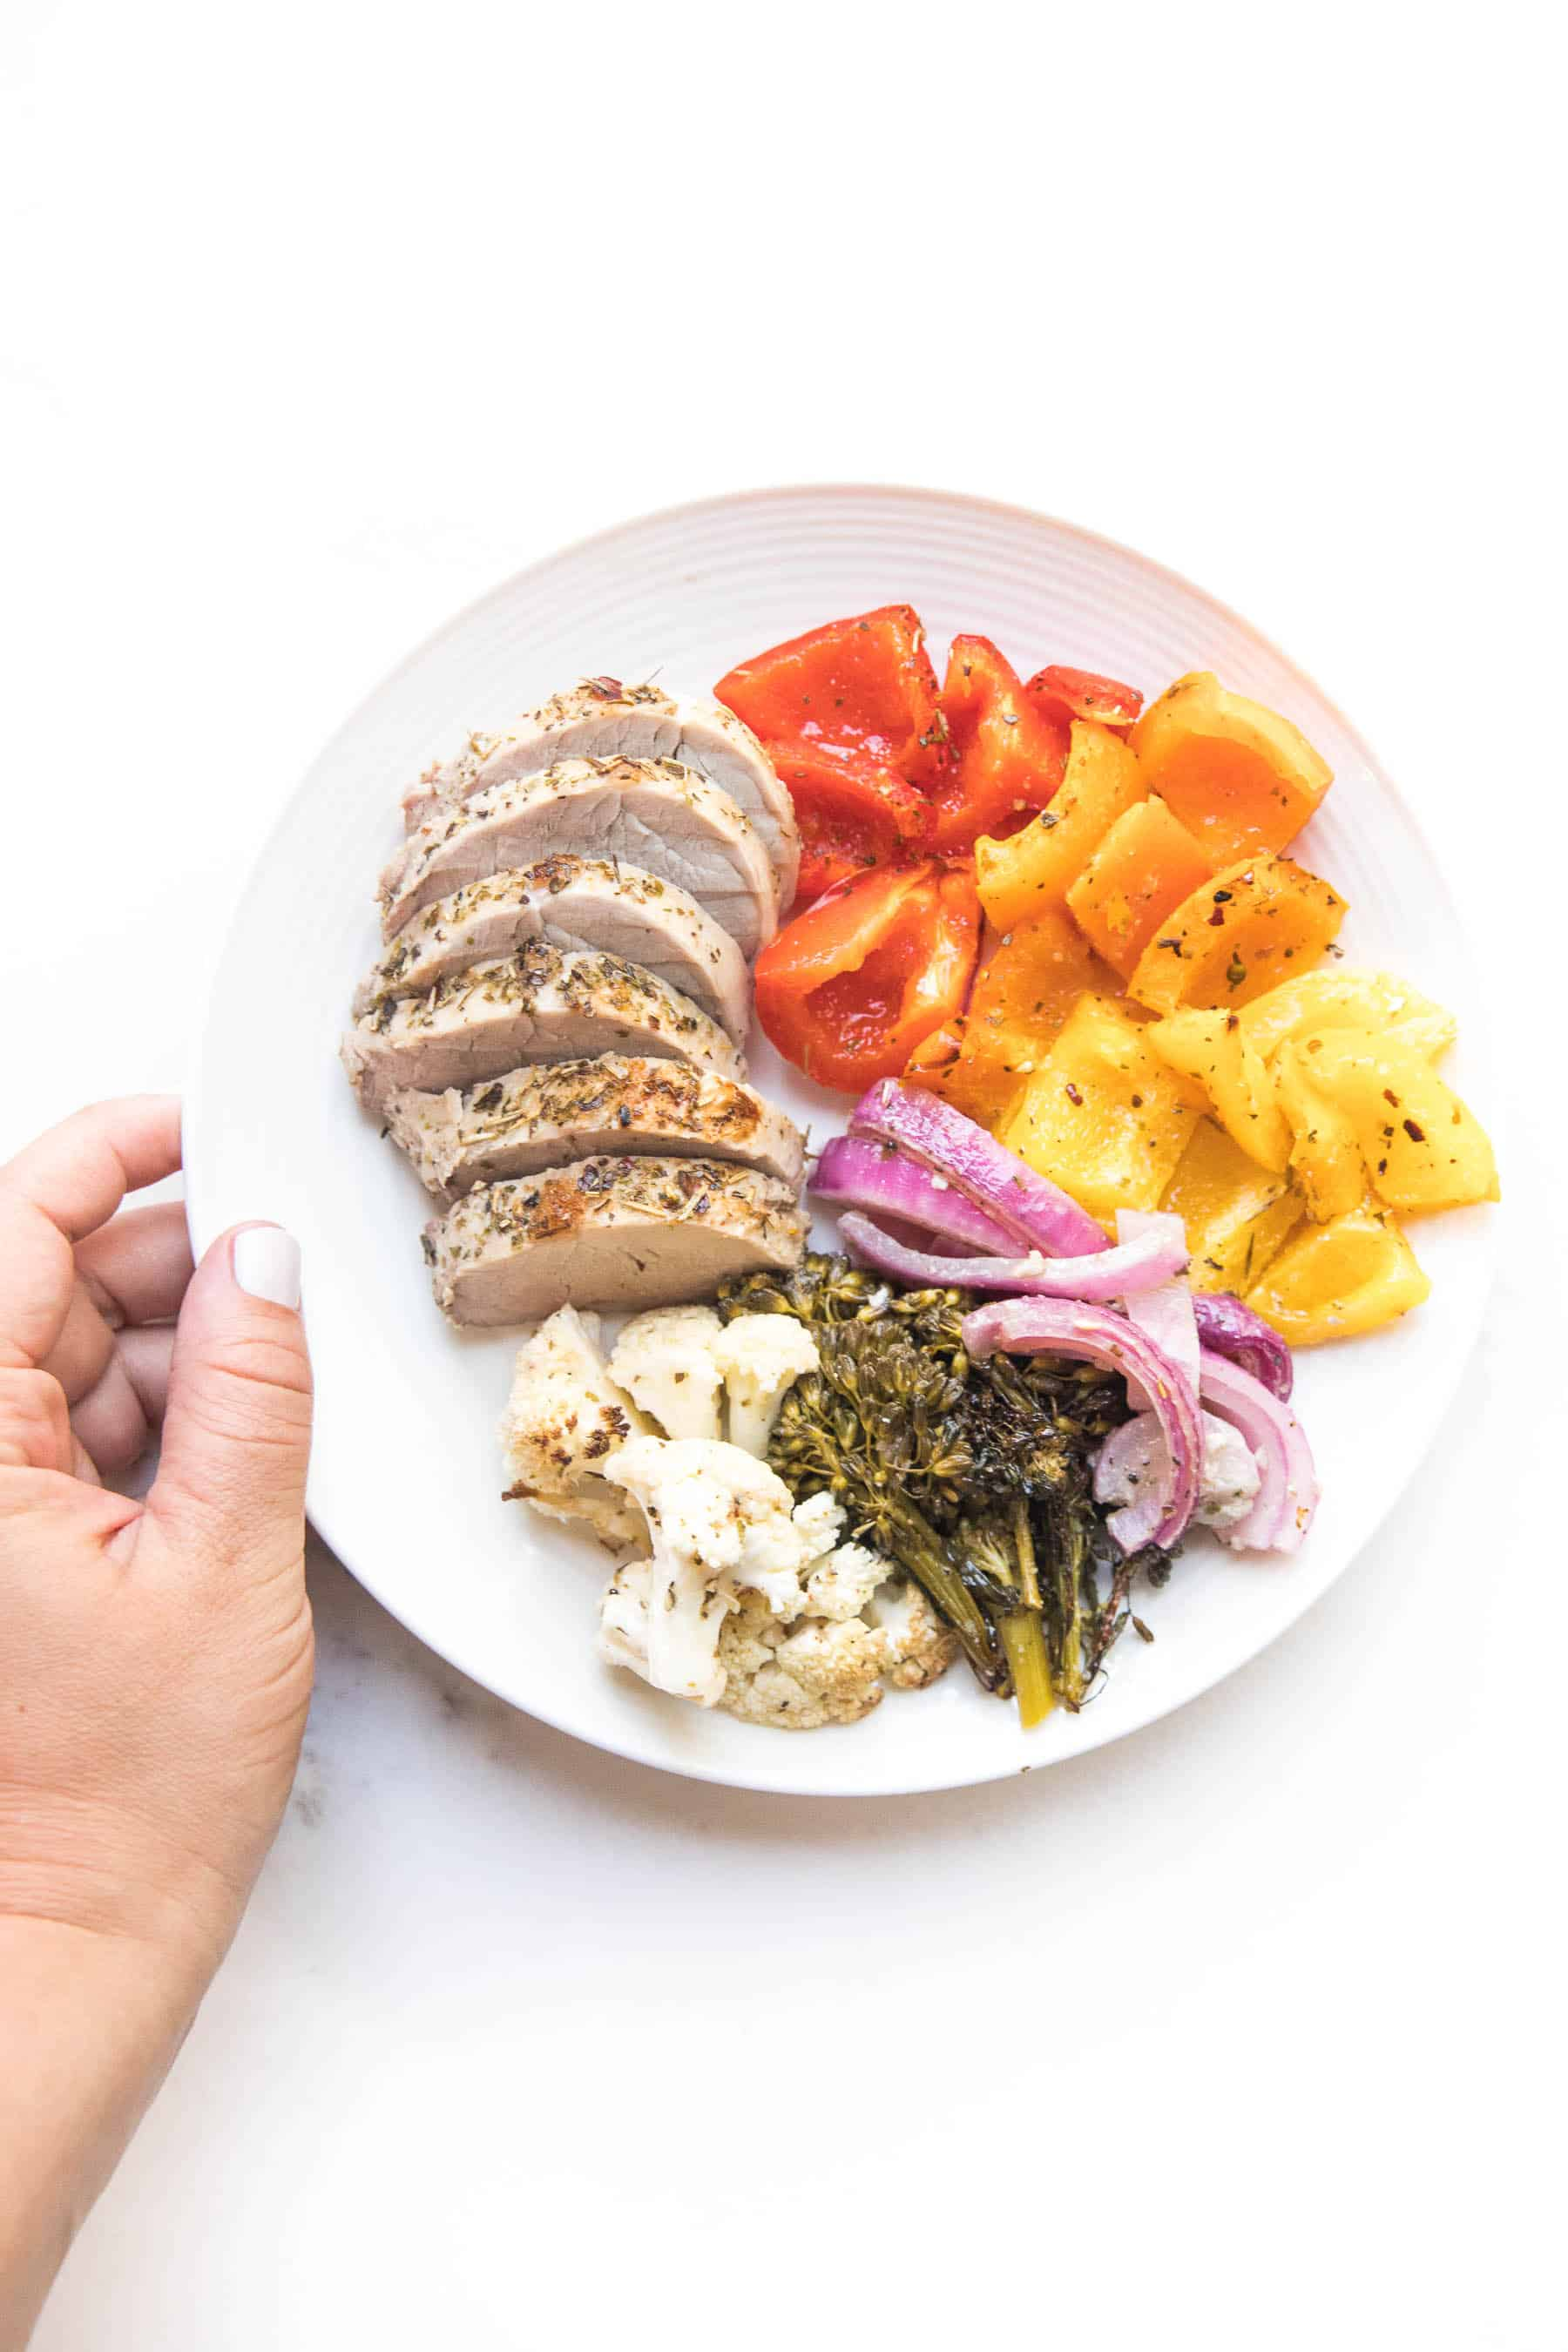 hand holding a white plate with sliced pork tenderloin and rainbow vegetables